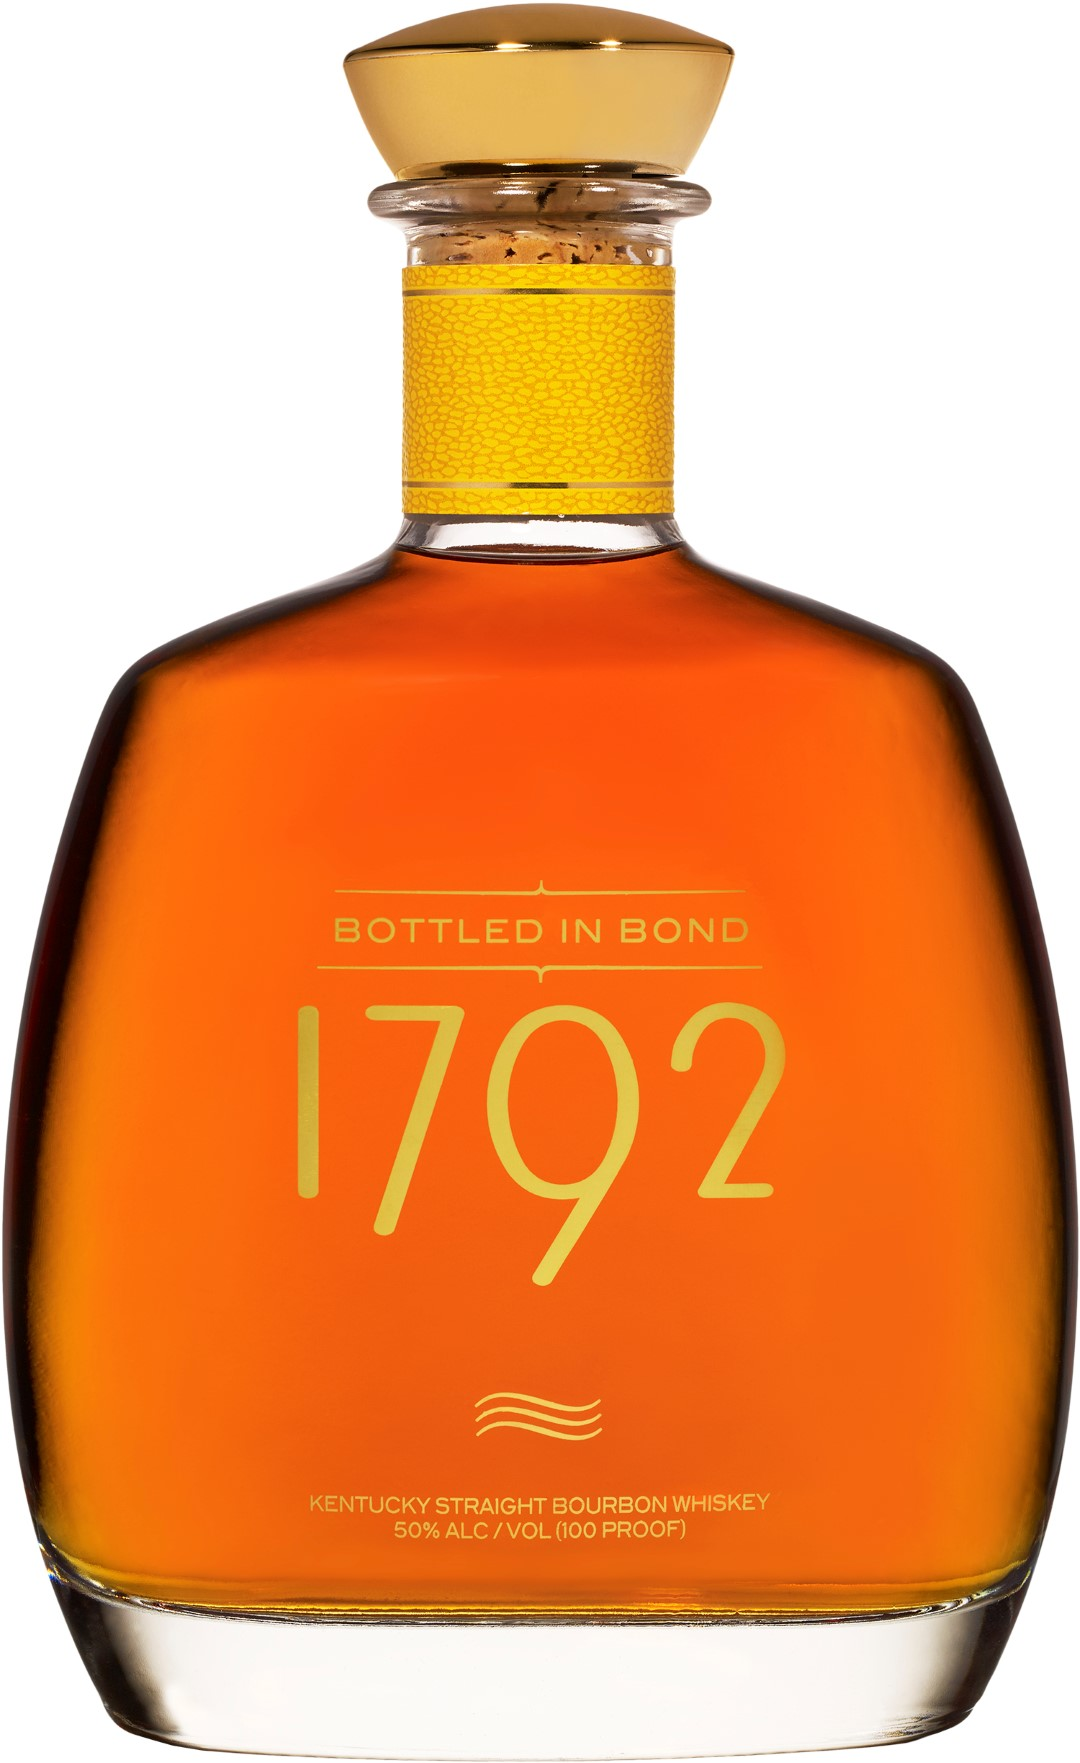 1792 Bottled-in-Bond Bourbon